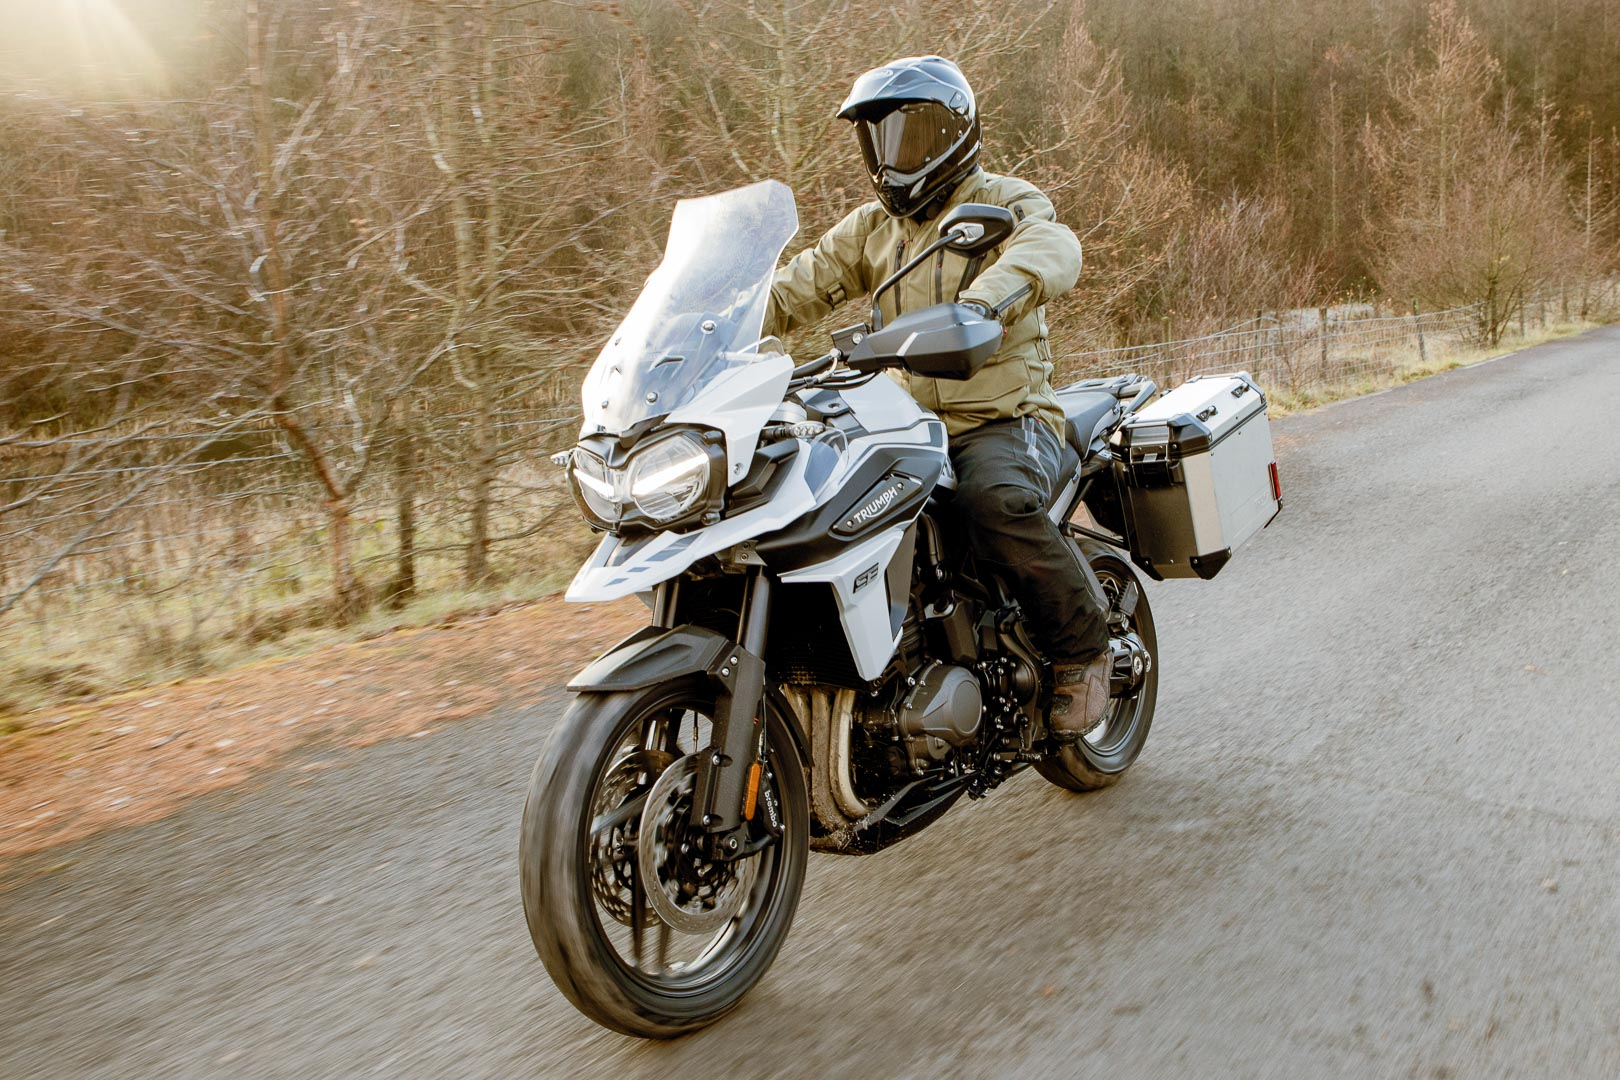 2020 Triumph Tiger 1200 Alpine Prices